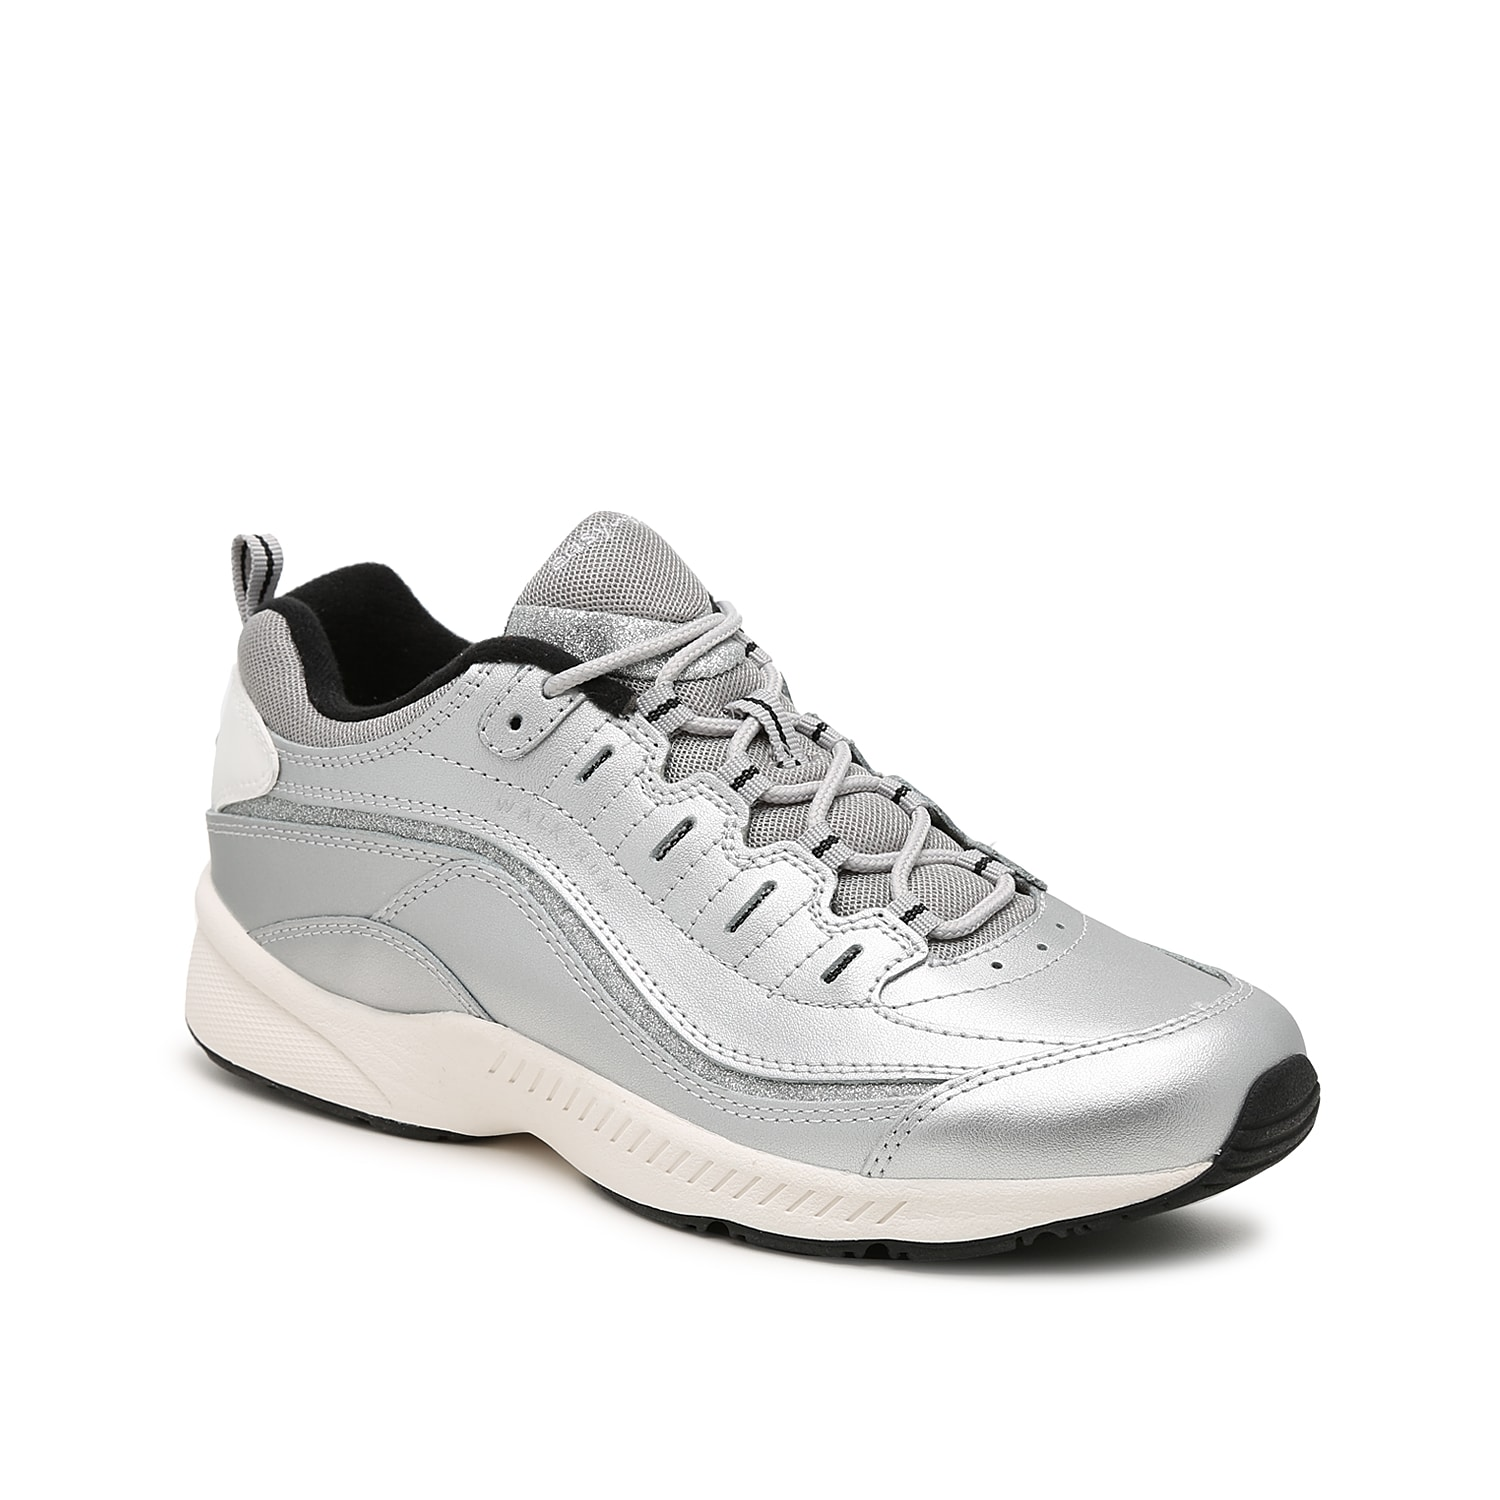 Get the support you need during your next walk or run with the women\\\'s Regine sneaker from Easy Spirit. A plush footbed and EVA midsole cushion every step for unstoppable comfort!